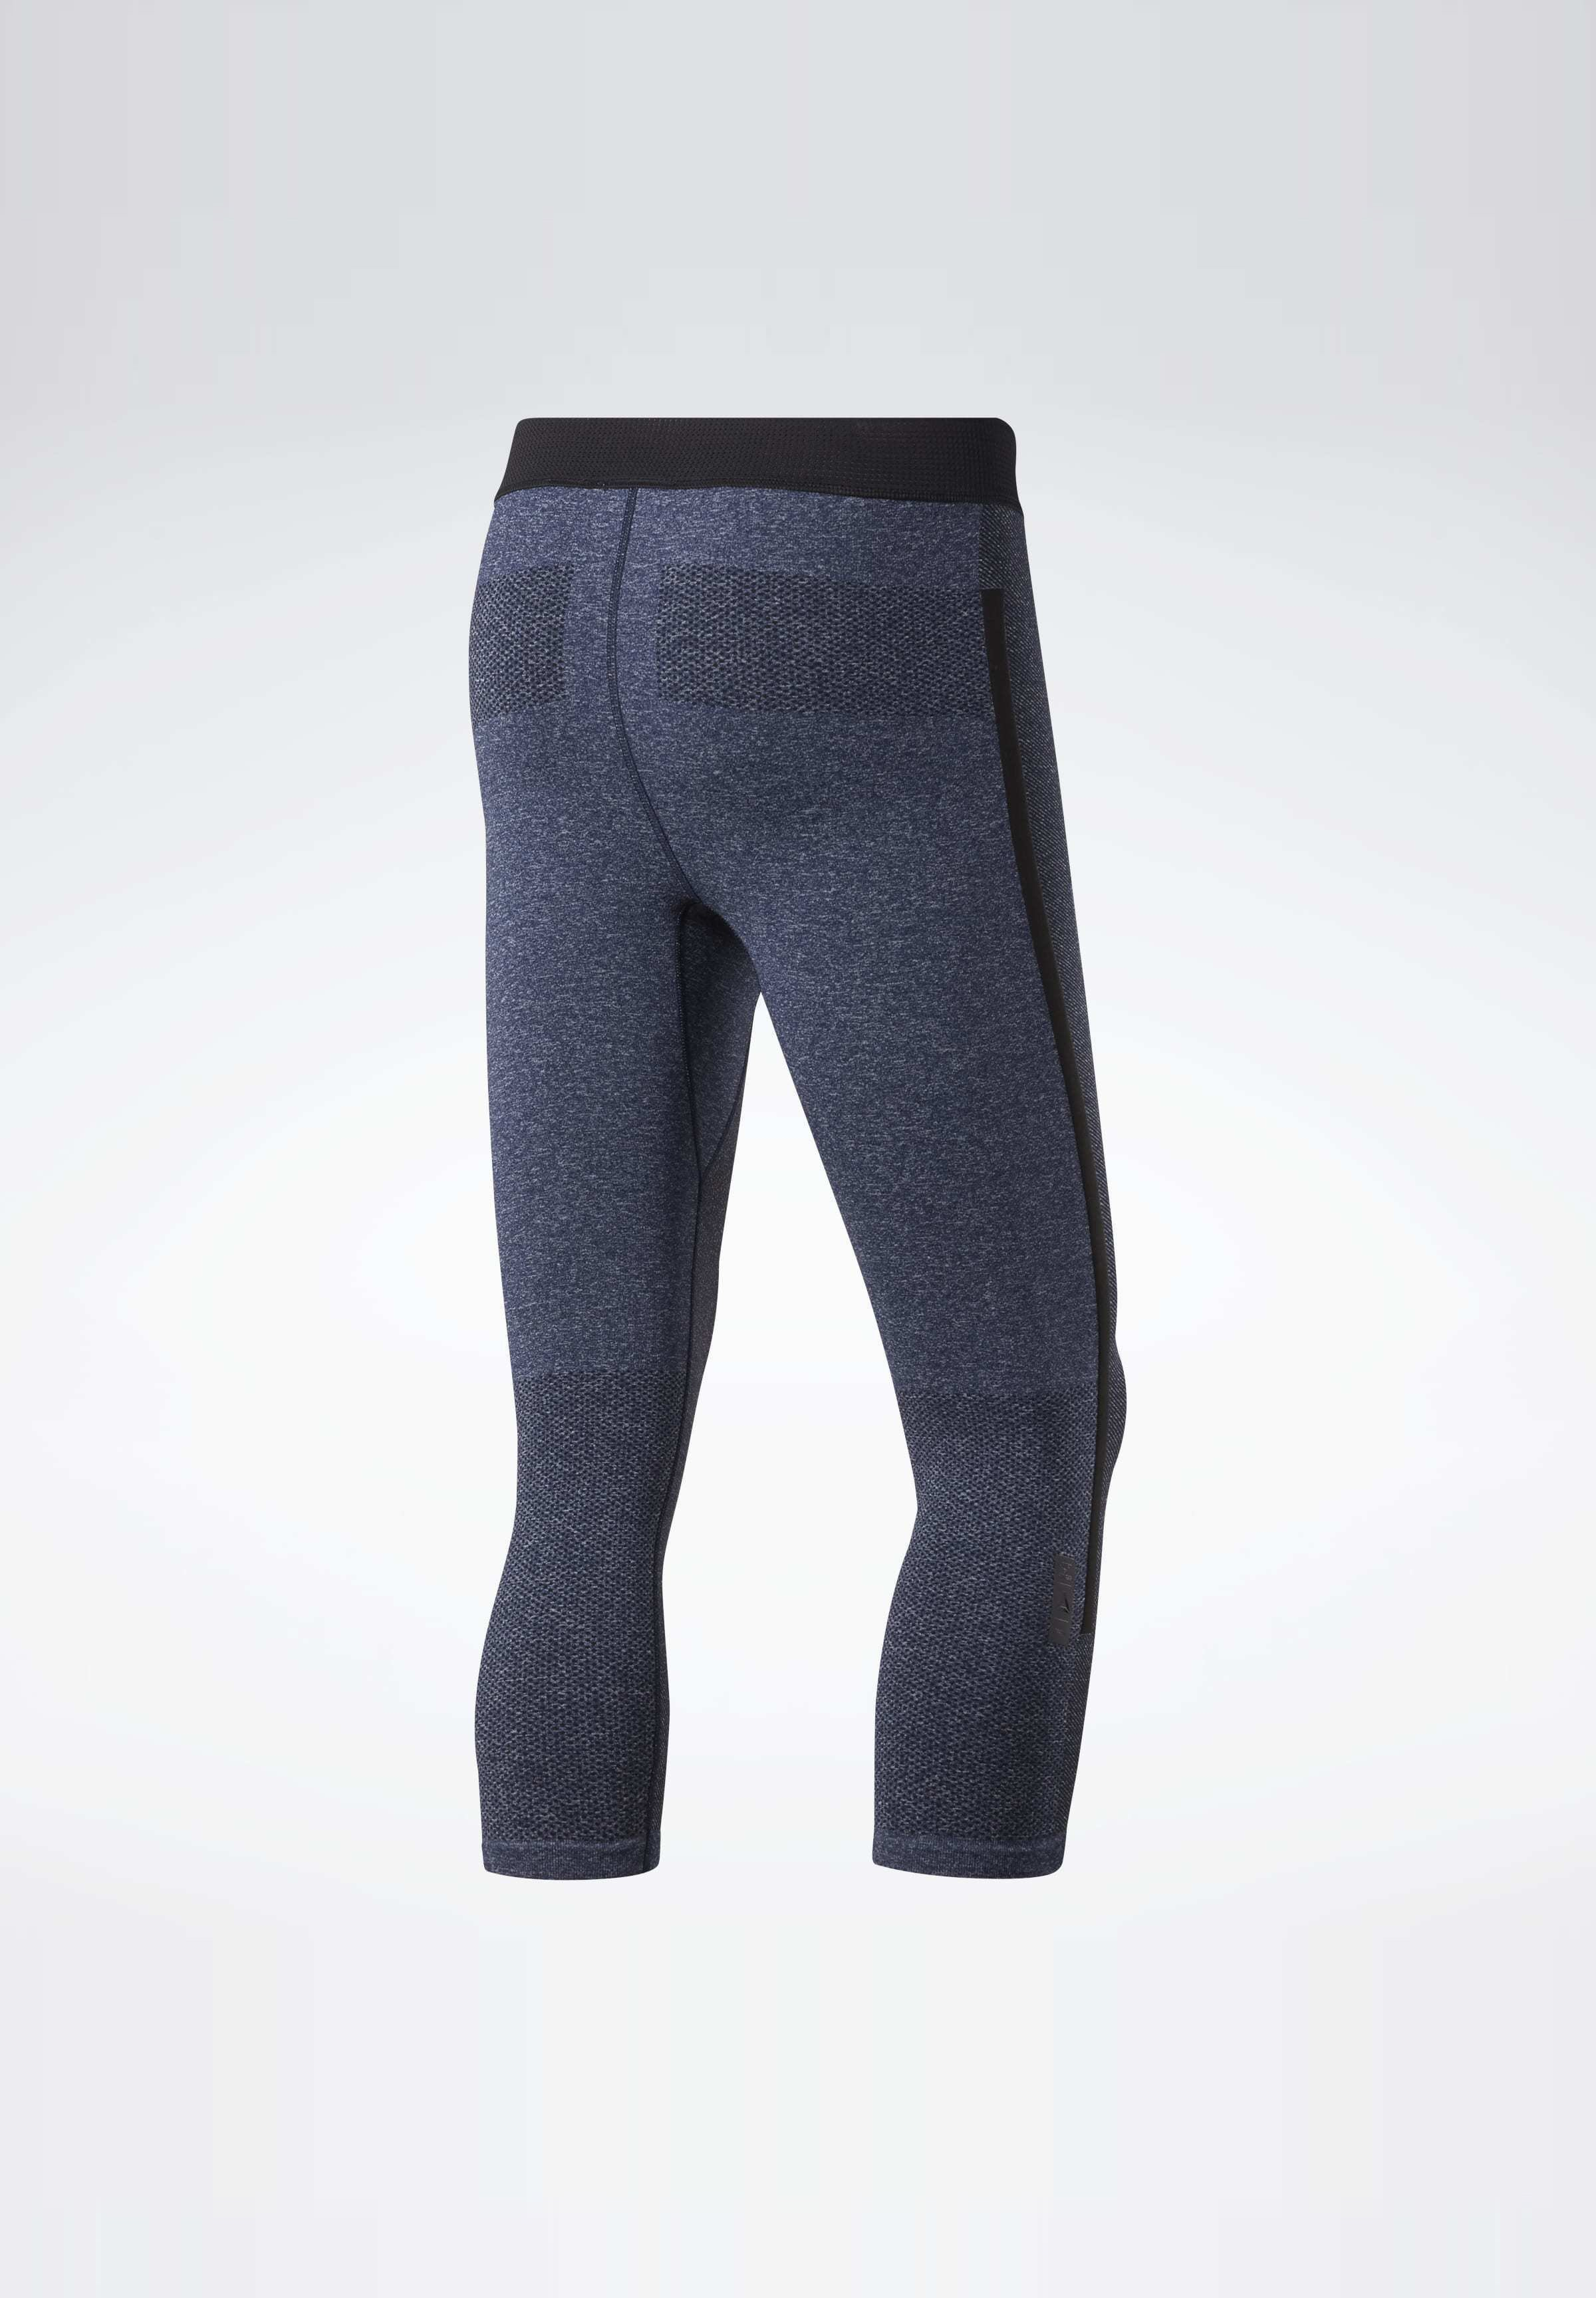 Reebok United By Fitness Myoknit 3/4 Tights - Träningsshorts 3/4-längd Blue